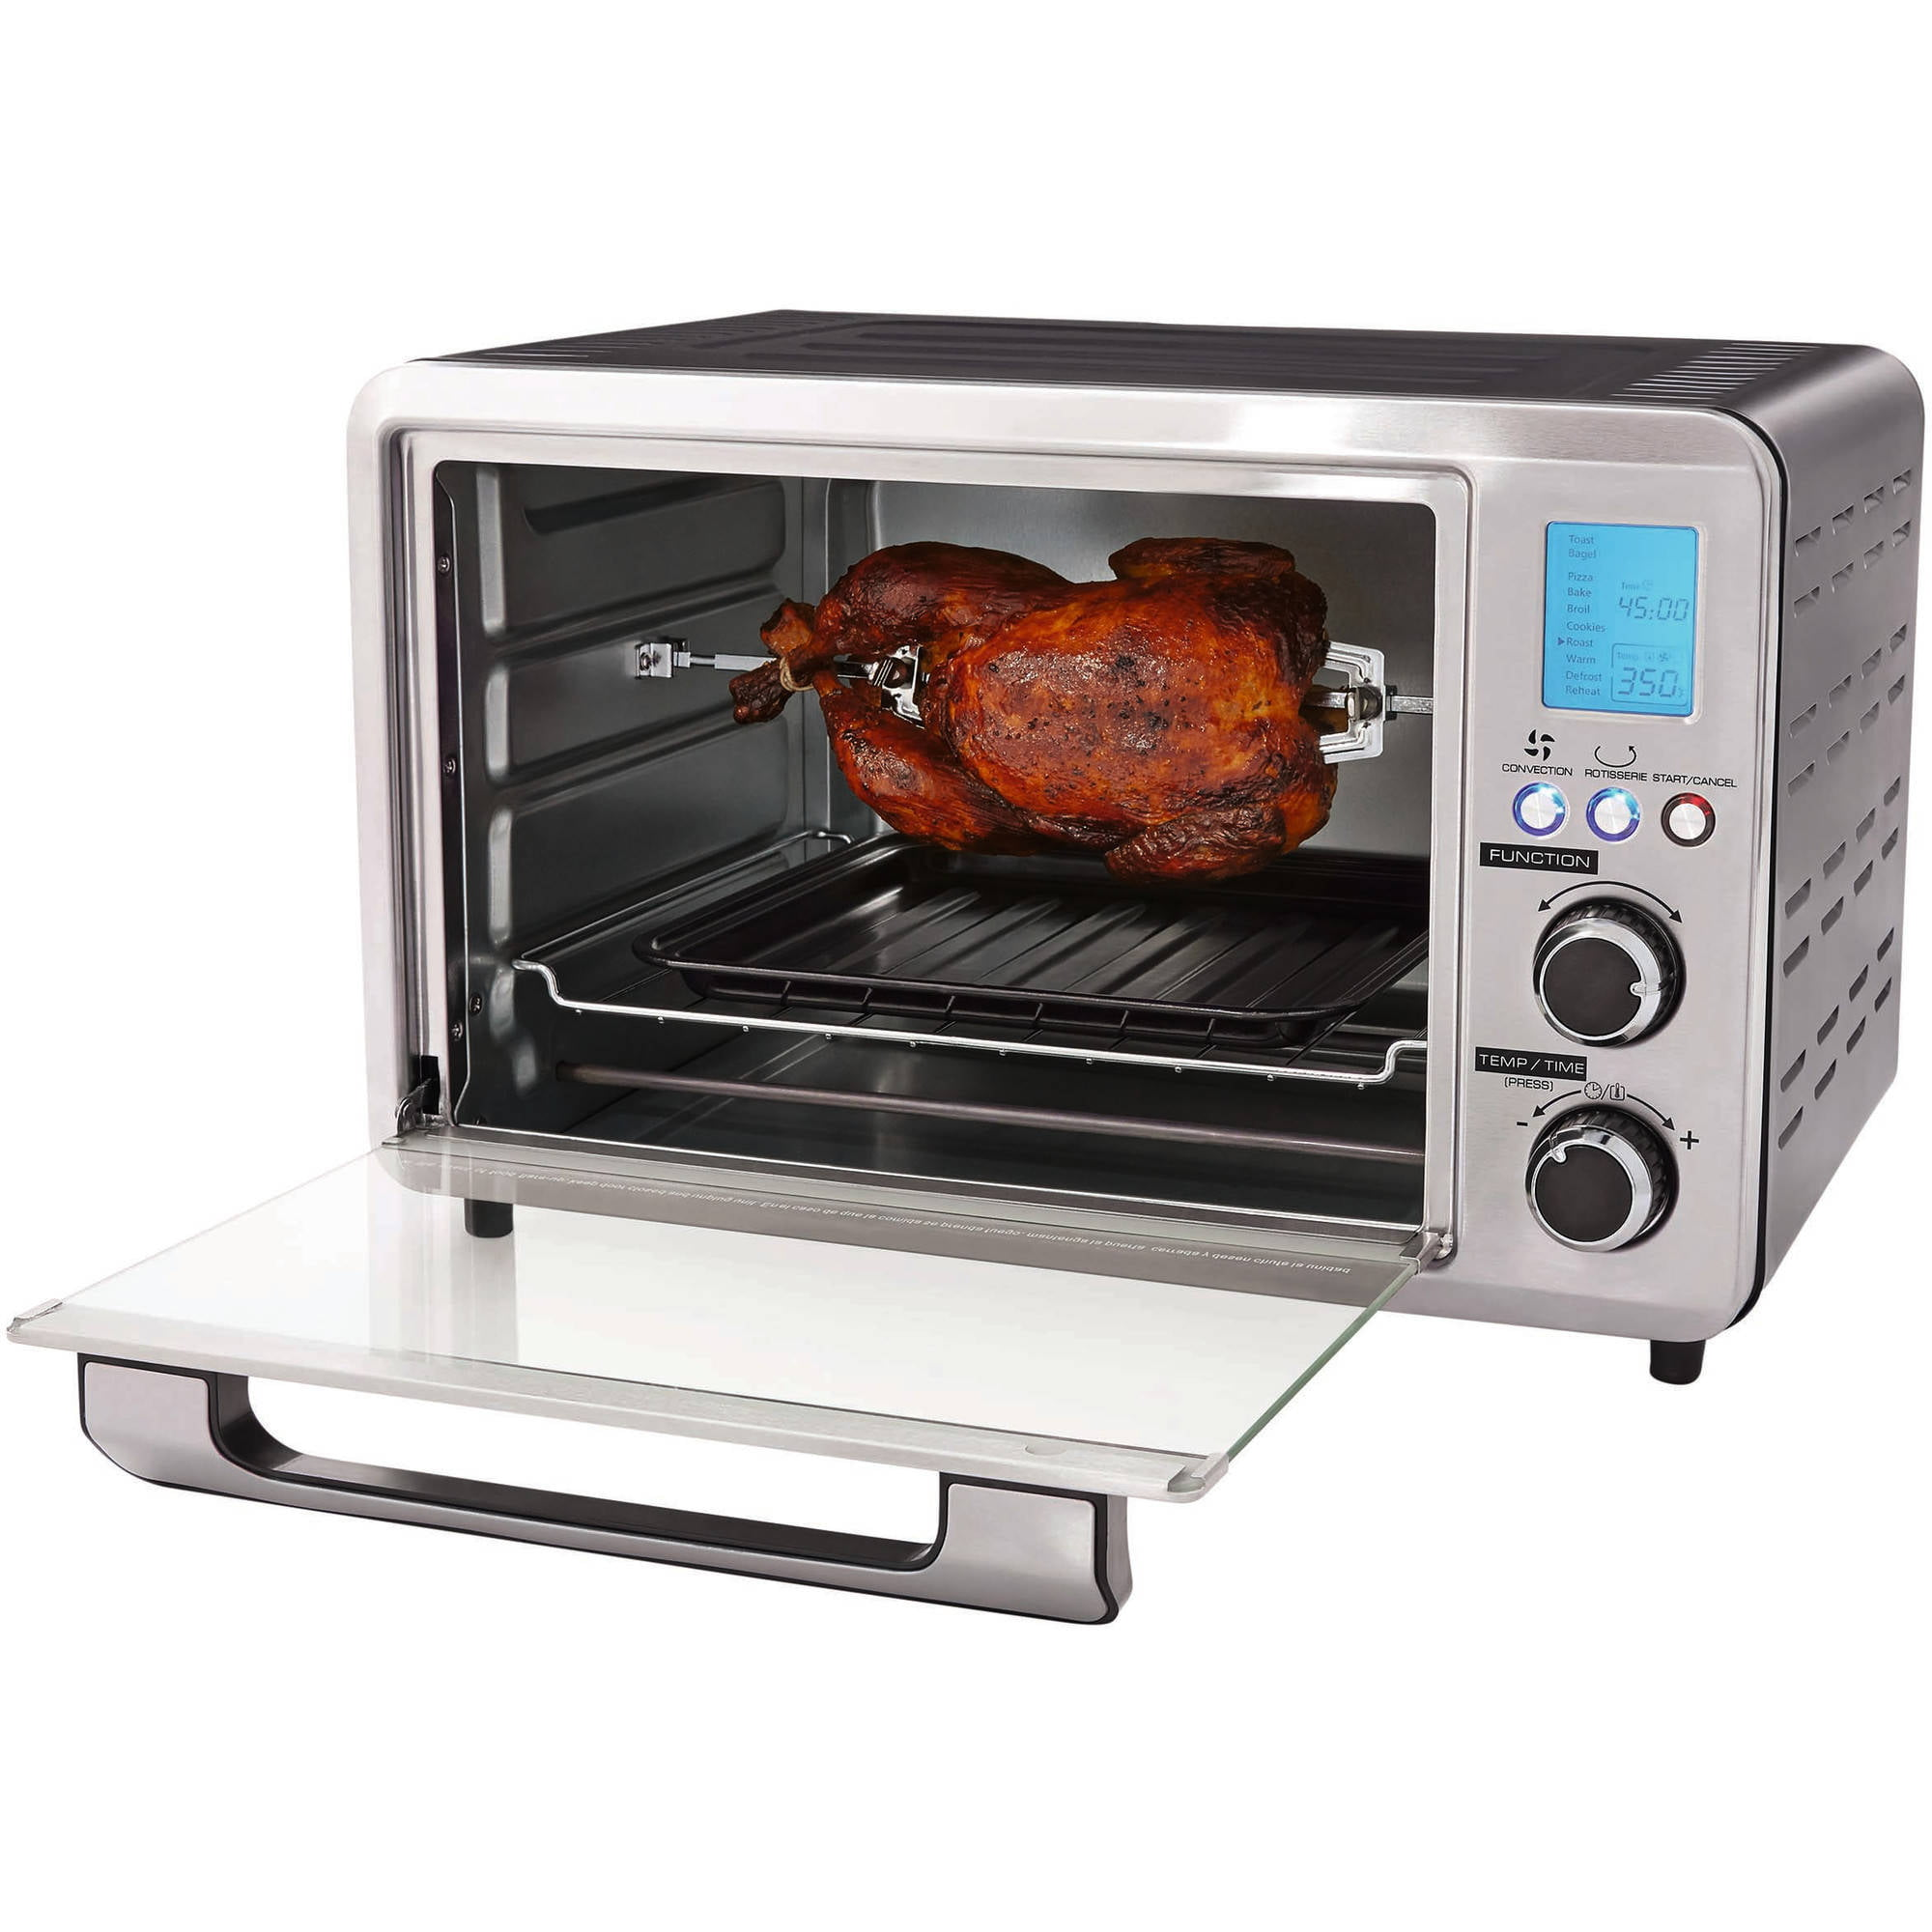 toaster white oven over product free home garden brentwood overstock on slice orders ts shipping